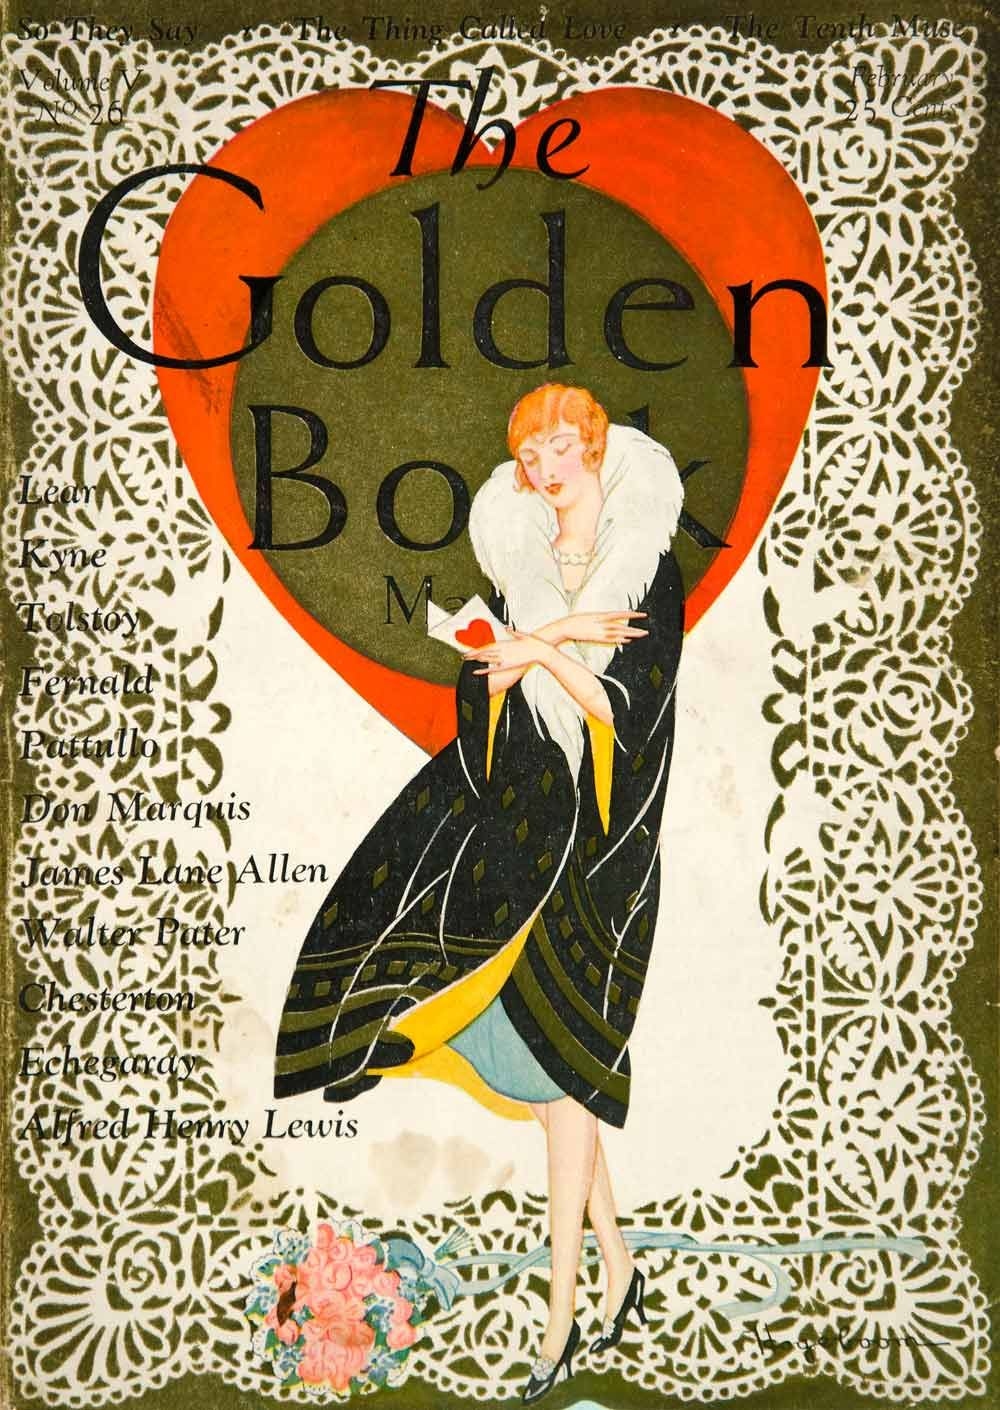 Color art magazine - 1927 Color With Gold Ink Cover For The February Issue Of The Golden Book Magazine Featuring